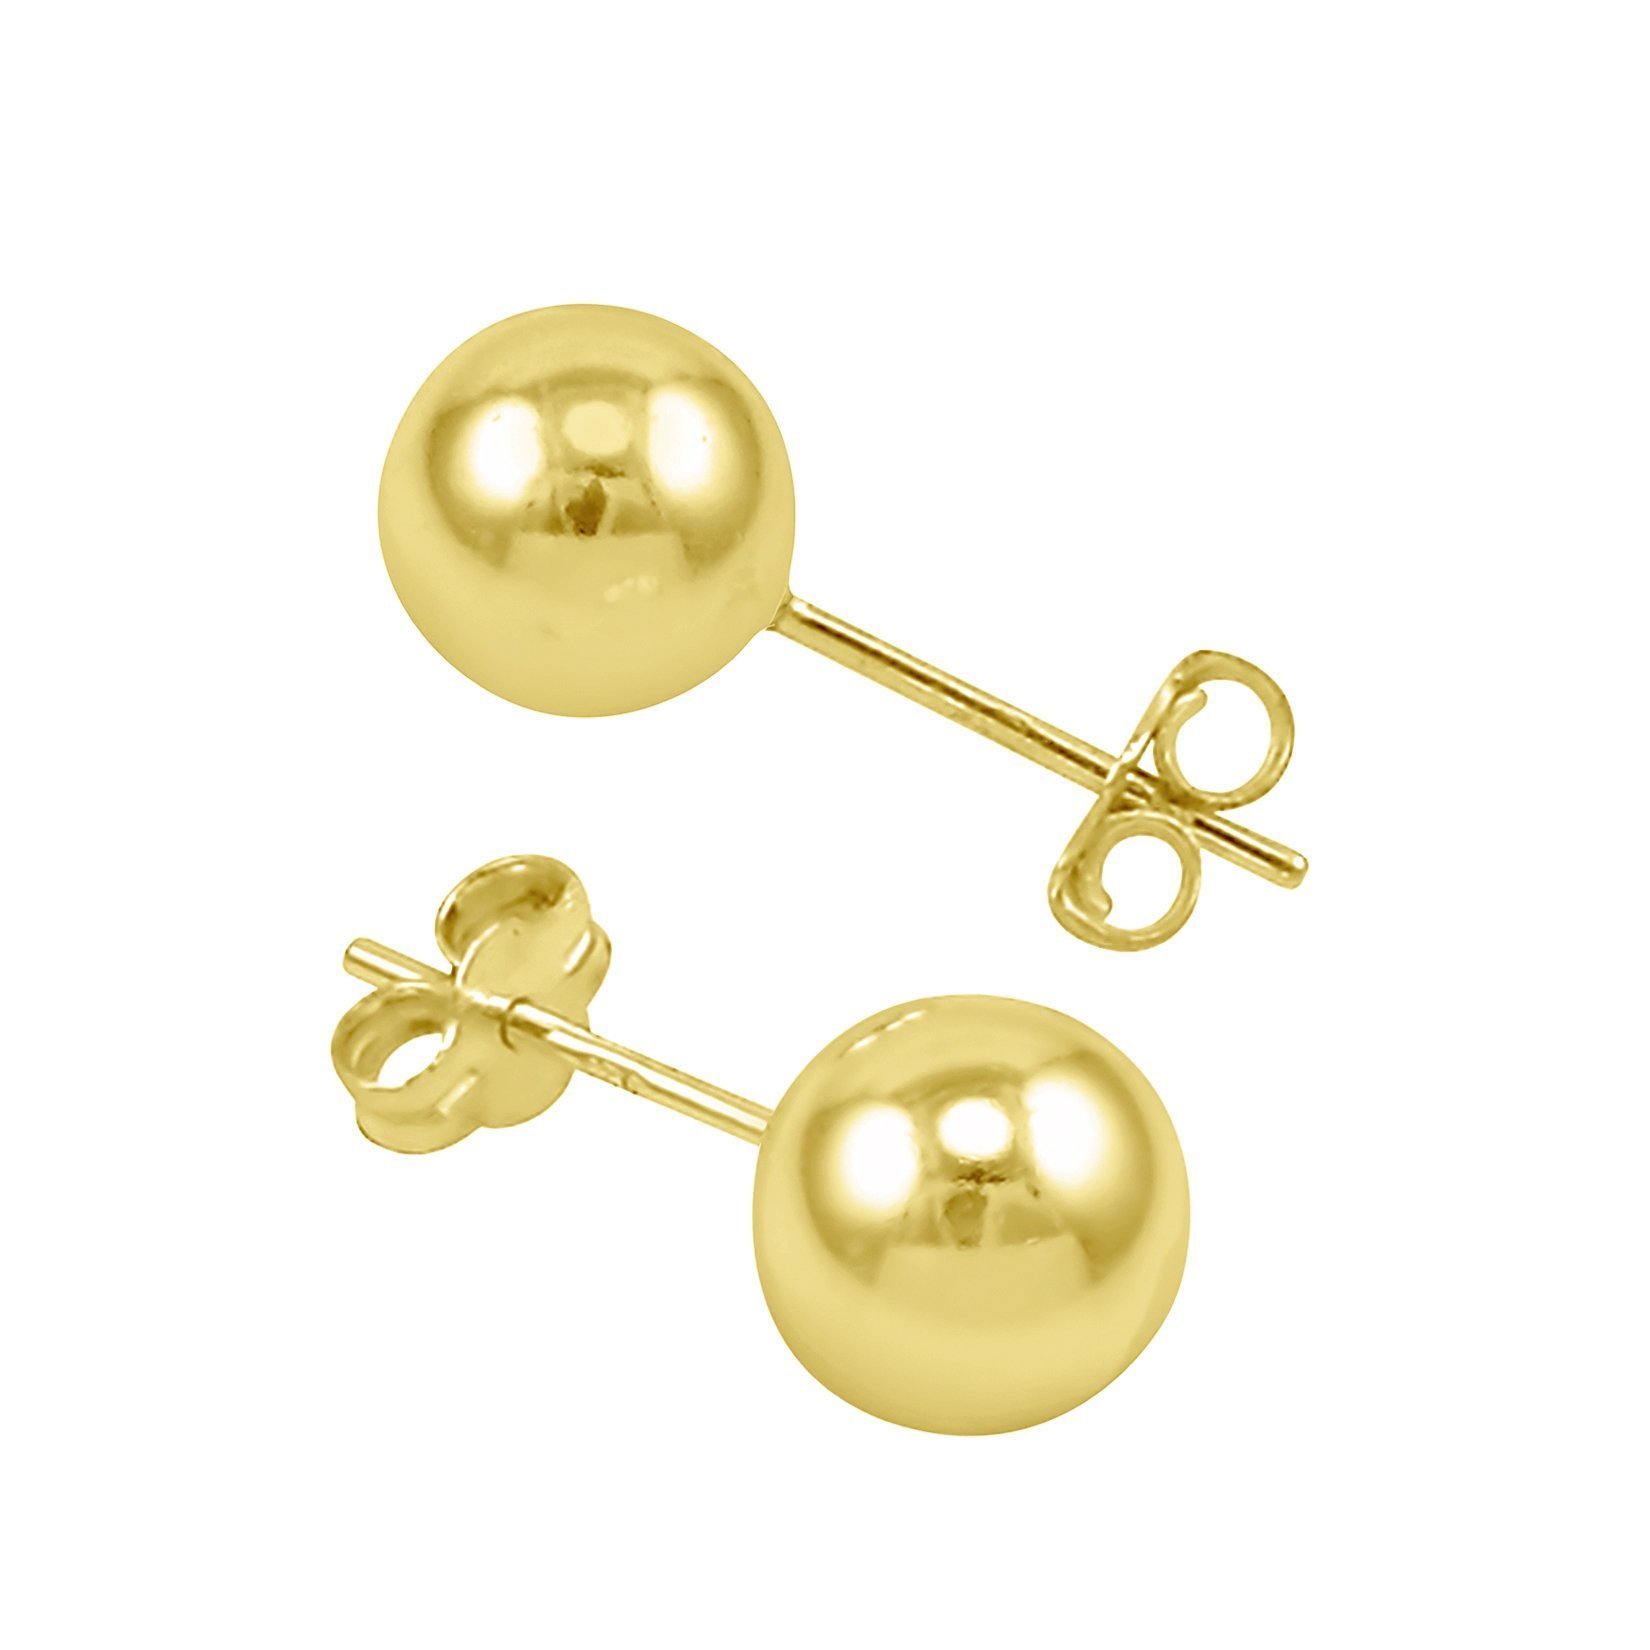 14K Yellow Gold Filled Round Ball Stud Earrings Pushback 8mm by Kezef (Image #2)